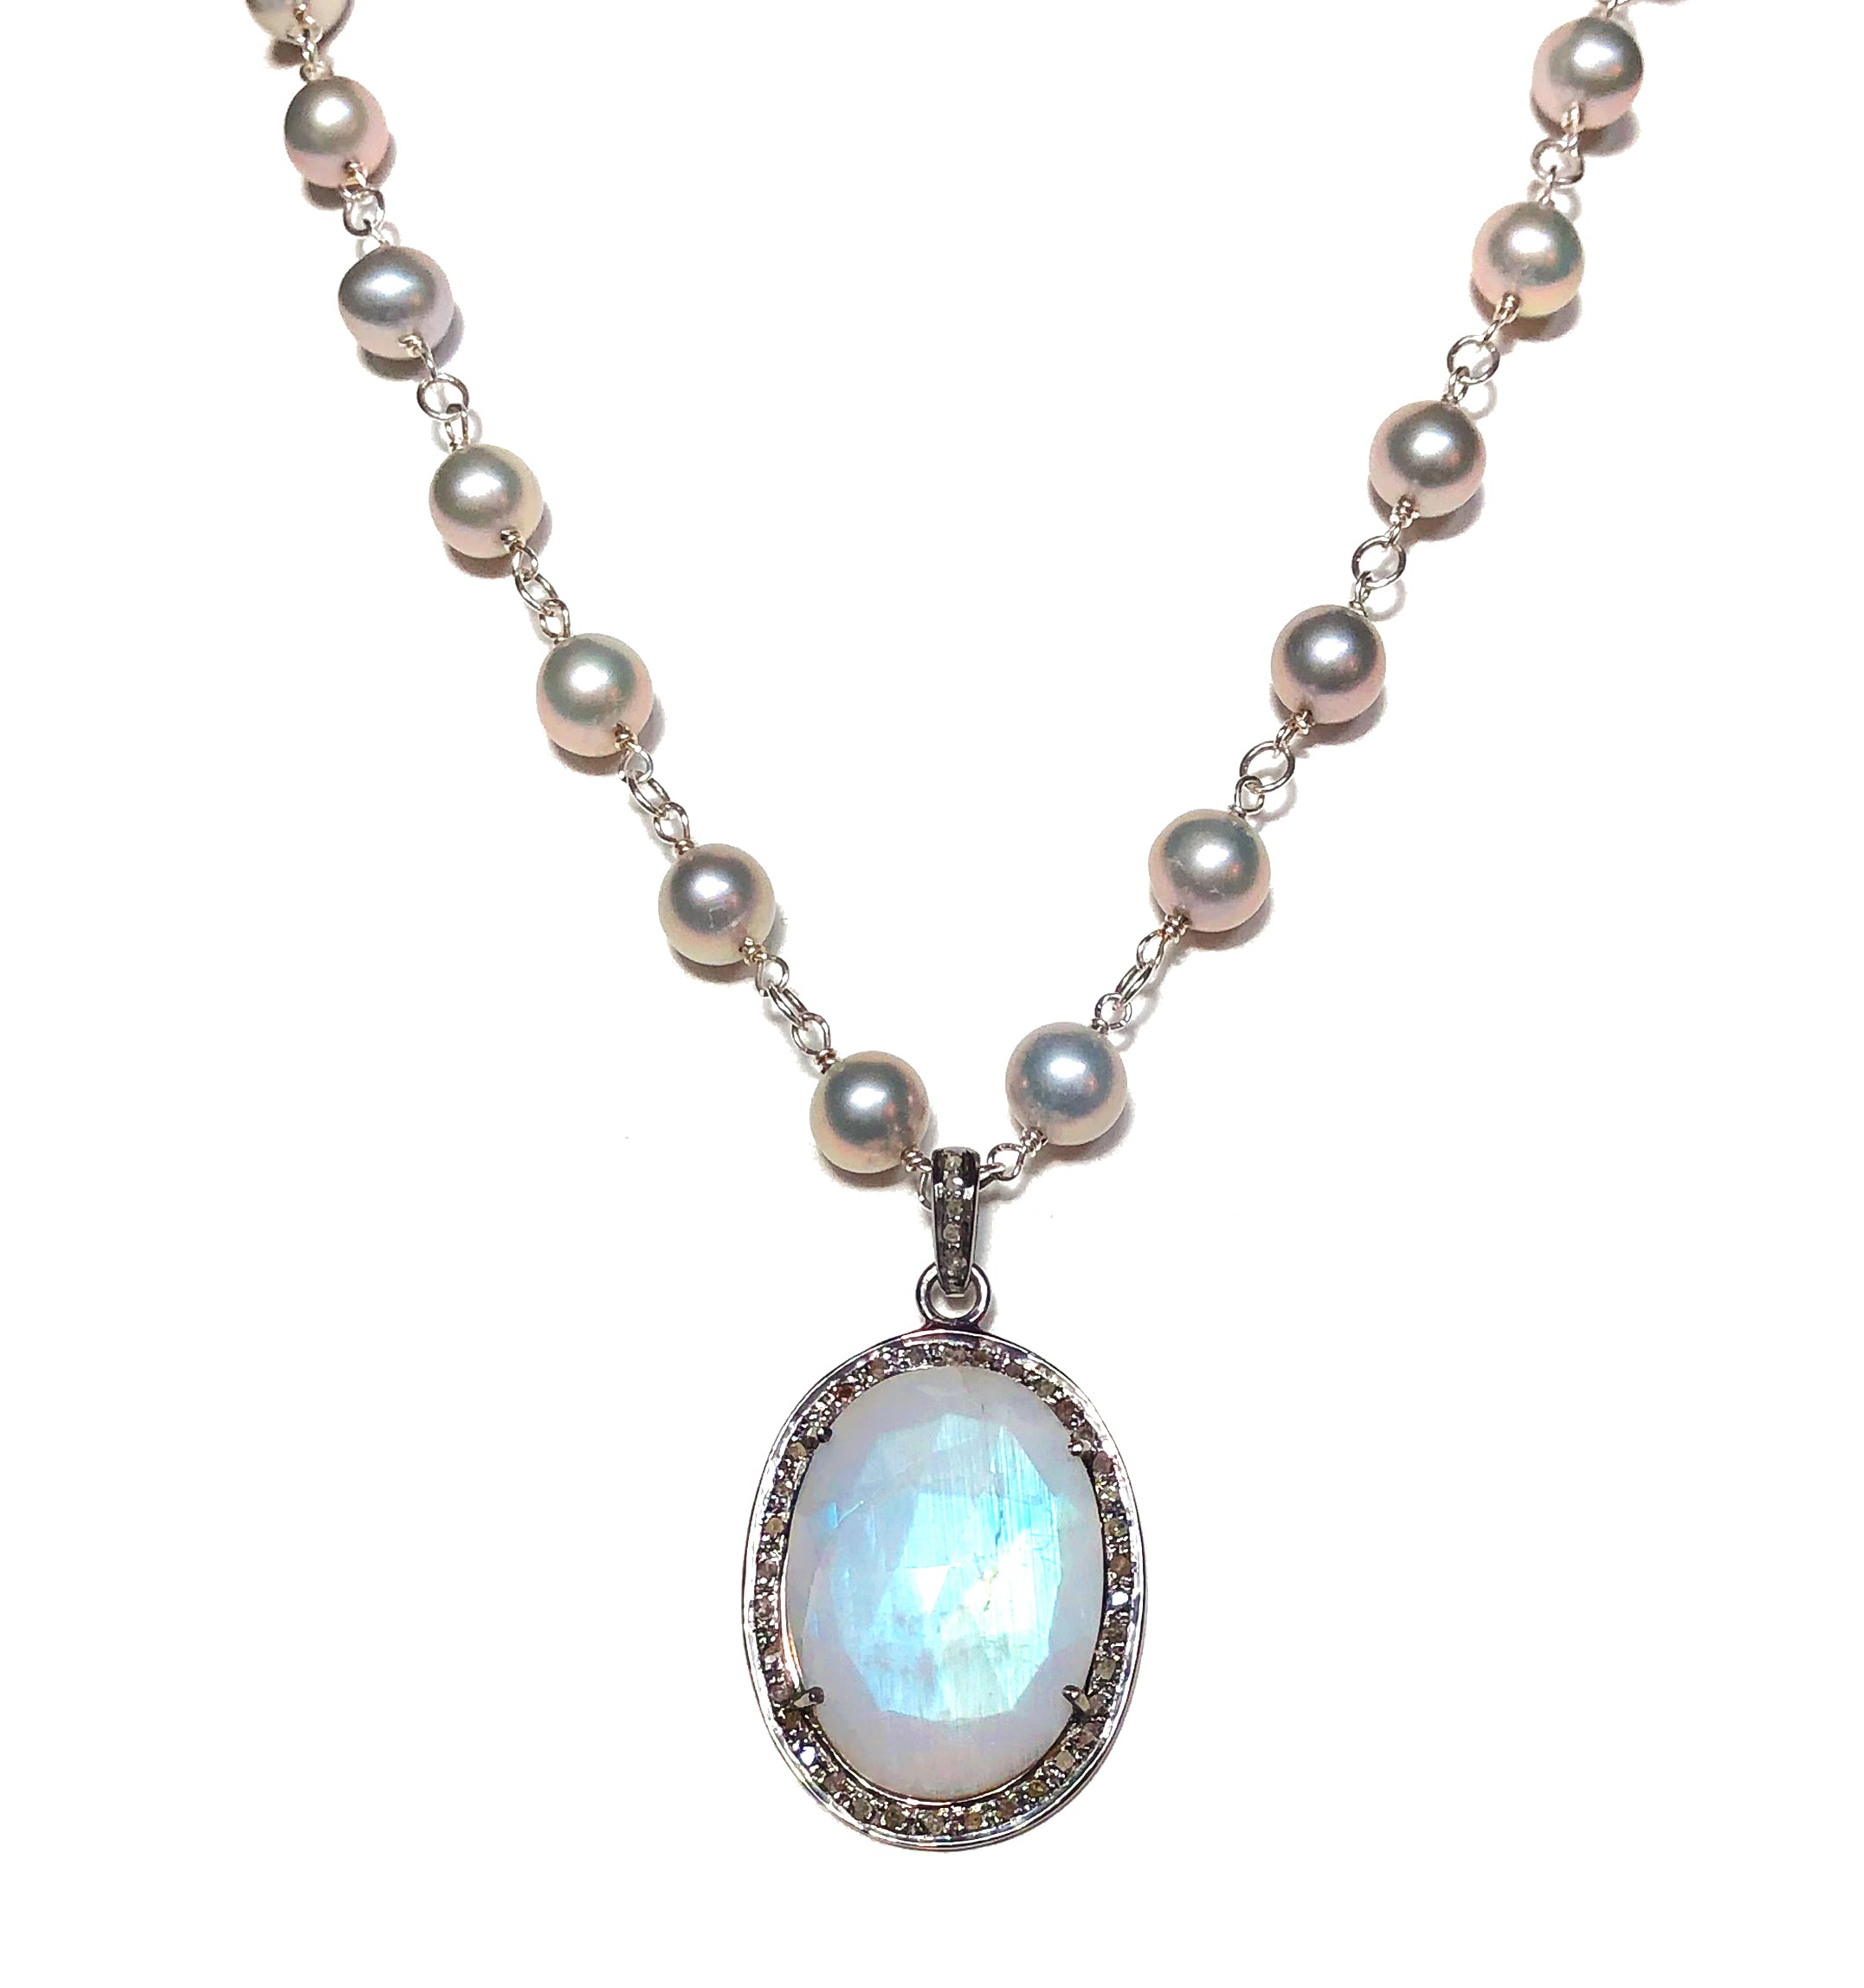 Pave Diamonds, Moonstone and Pearls